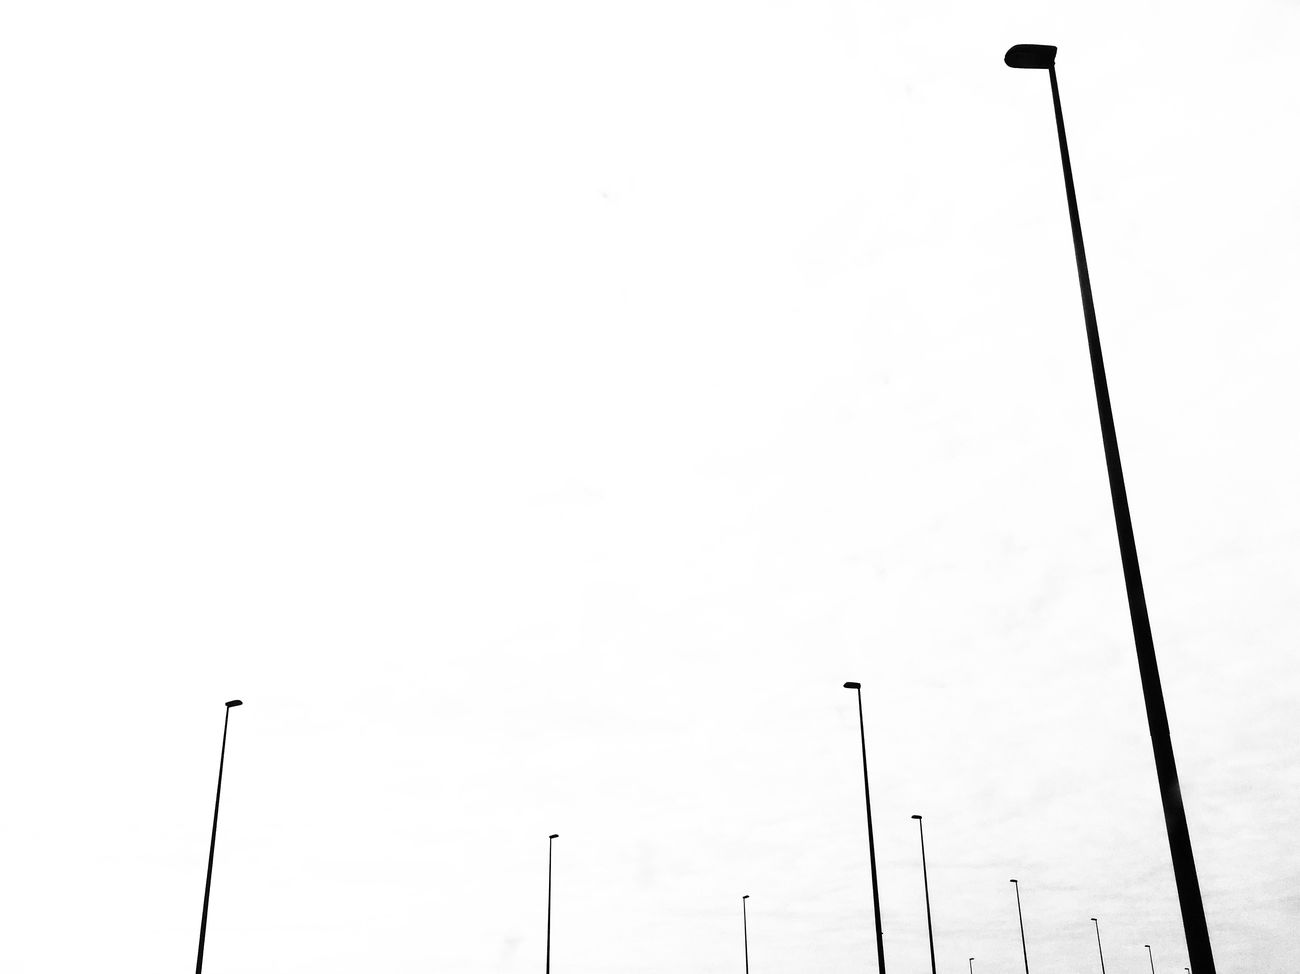 Street Light Street Lamp Road Clear Sky Minimalist Minimalism Minimal Outdoors Lighting Equipment Bnw Bnw_collection EyeEm Best Shots - Black + White Blackandwhite Photography Blackandwhite Tranquility Mmaff From My Point Of View EyeEm Gallery Eye4photography  Taking Photos Hello World EyeEm Best Edits Light And Shadow